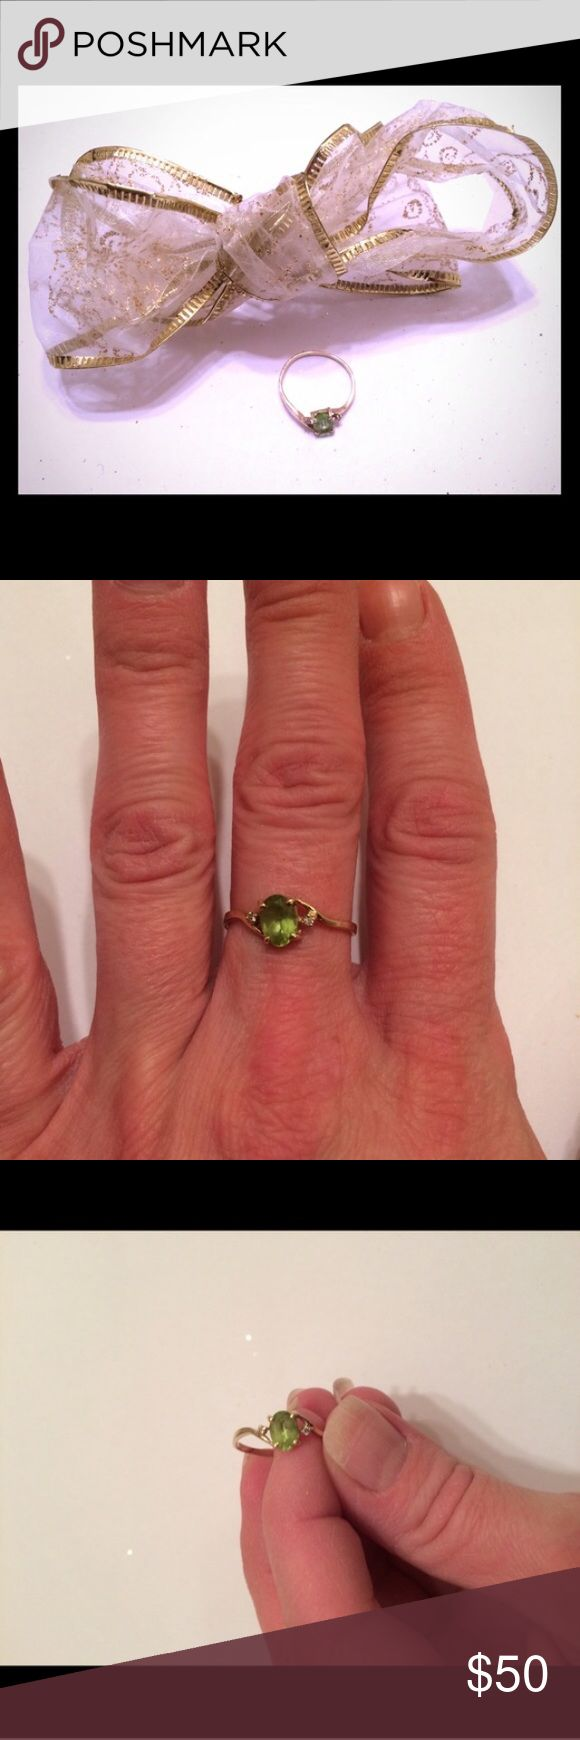 """Vintage 10k or 14k gold peridot ring Vintage 1990's gold peridot and diamond ring size 7. Marking on inner band shows its gold, but the number has been worn off...so it may be 10k or it may be 14k. I'm not sure. The lettering says """"KP"""" meaning it's gold karat plume. It's a little worn off as well. It's a beautiful ring with a large peridot in the middle and one diamond on each side. Band is a little bent from wearing it a few times but still in great condition! Vintage Jewelry Rings"""